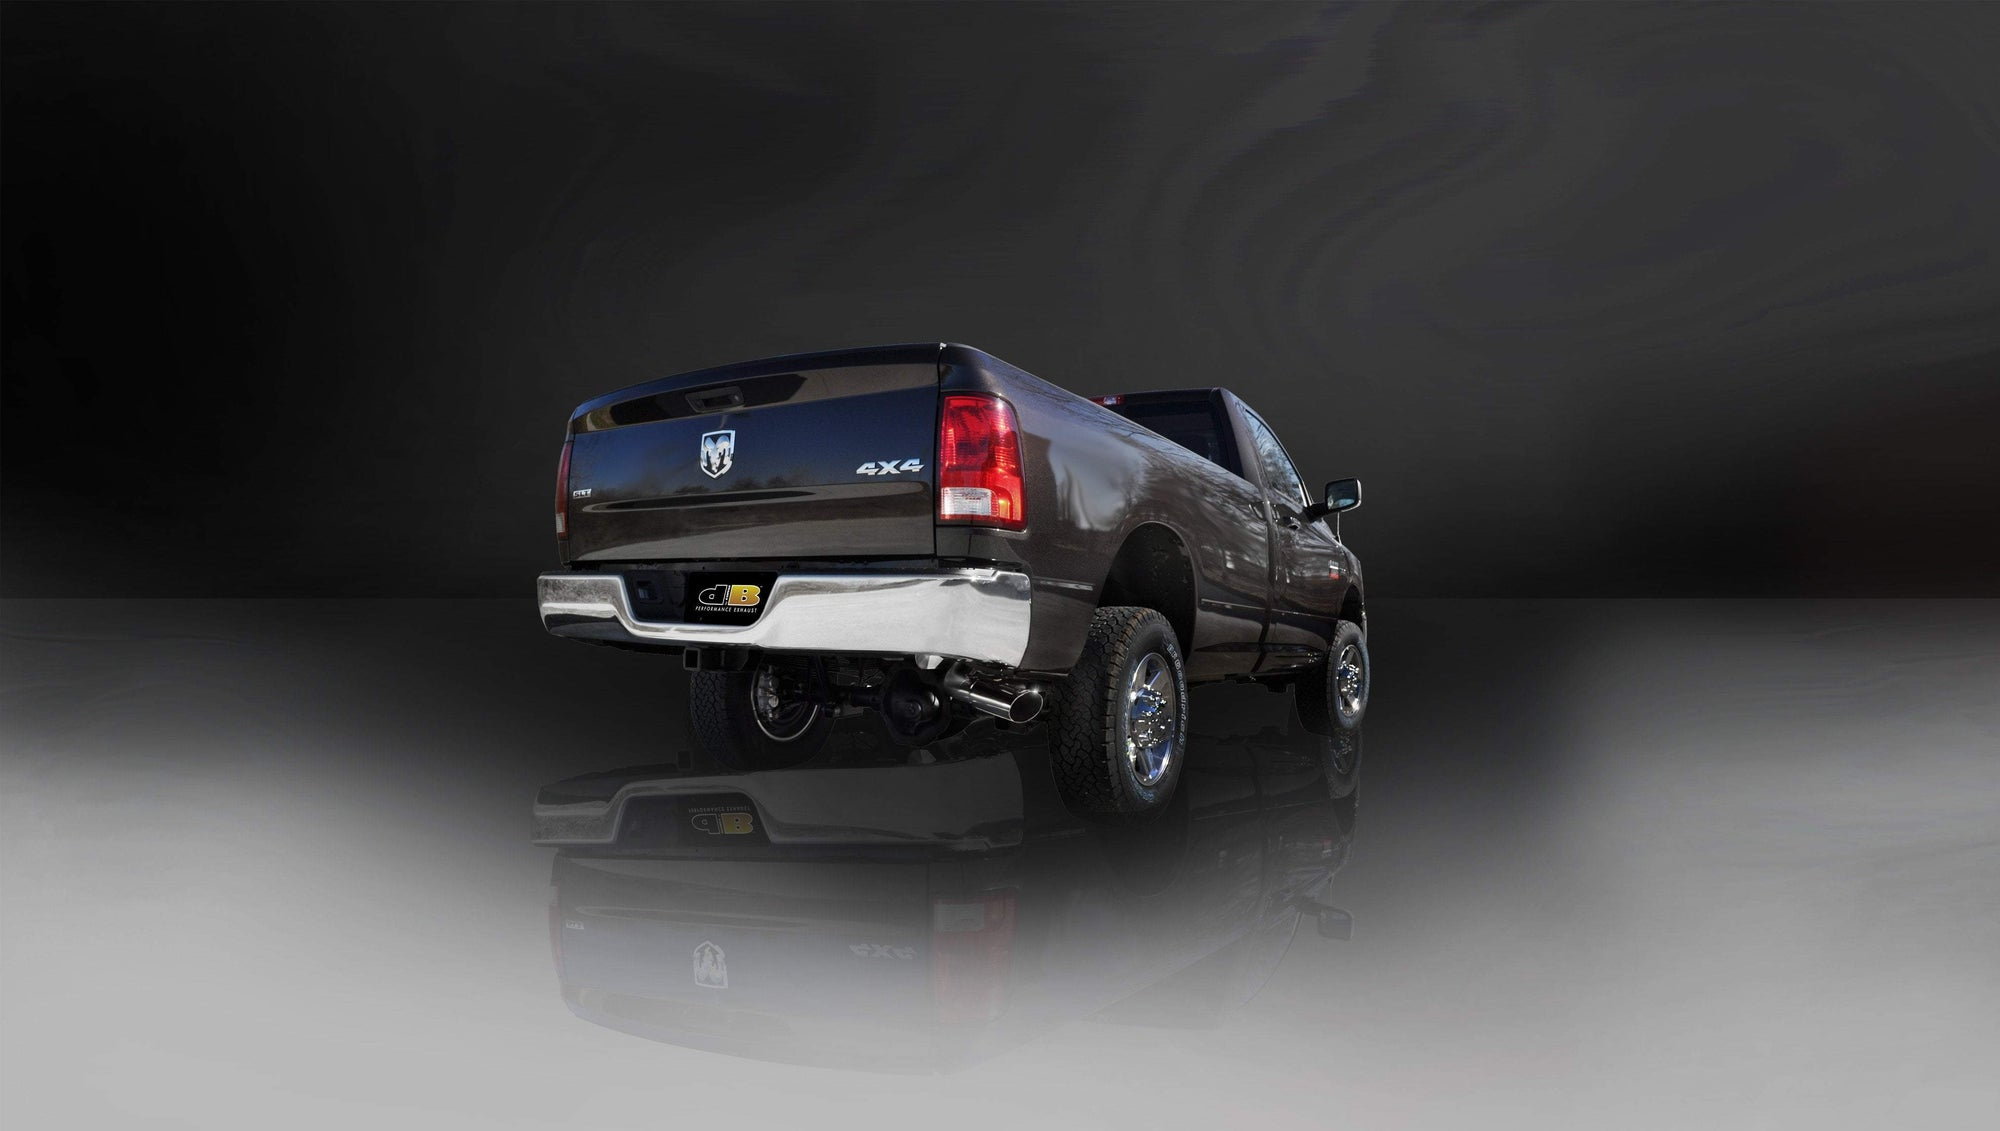 "dB Cat-Back Exhaust Polished / Sport / Single Side - Single 4in Slash Cut 2010-2013 Dodge RAM 2500 5.7L V8, 3.0""Single Side Exit Catback Exhaust System with 4.0"" Tip (24481) Sport Sound Level"